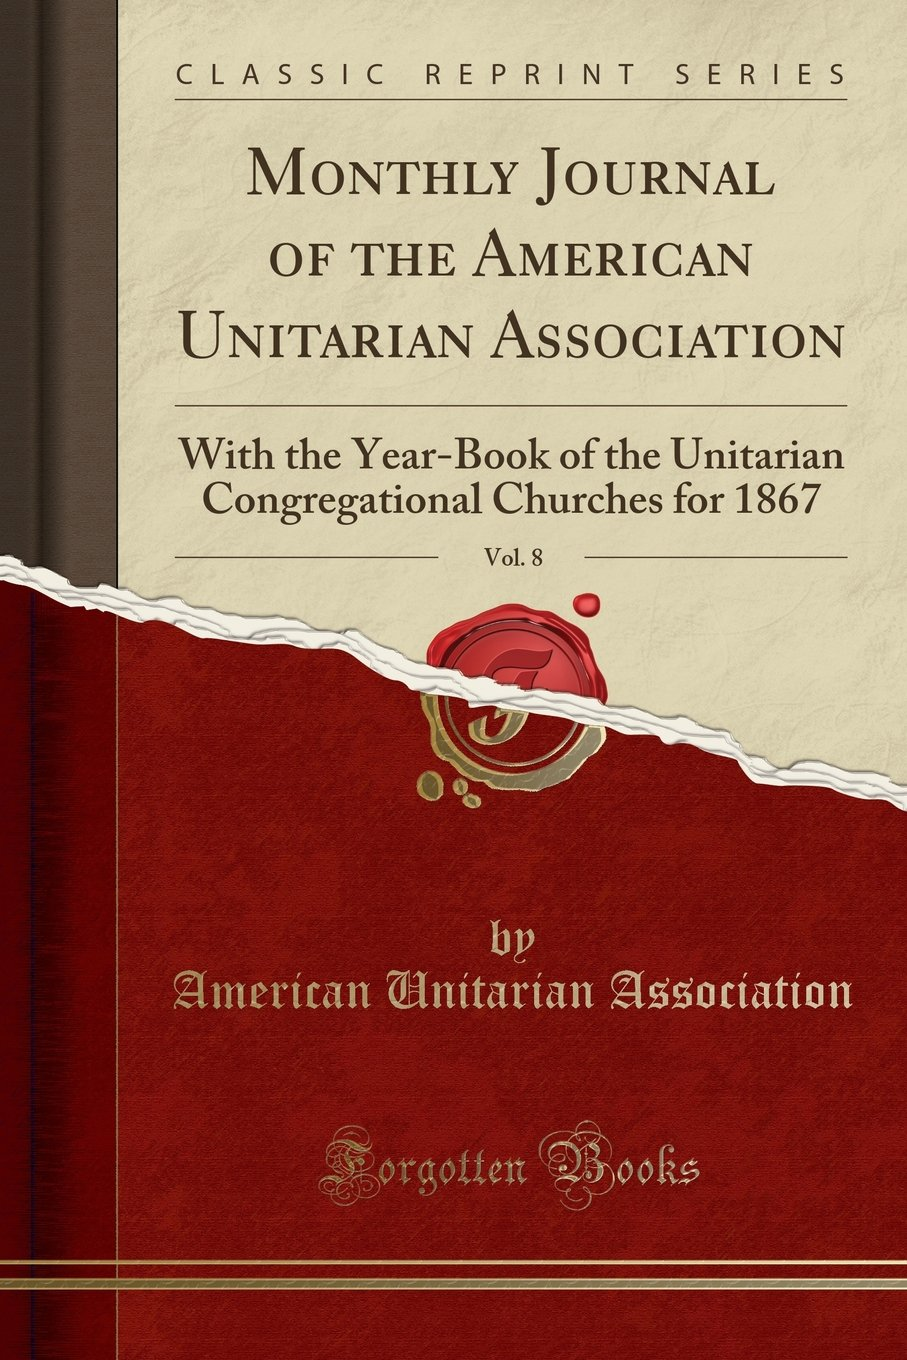 Monthly Journal of the American Unitarian Association, Vol. 8: With the Year-Book of the Unitarian Congregational Churches for 1867 (Classic Reprint)